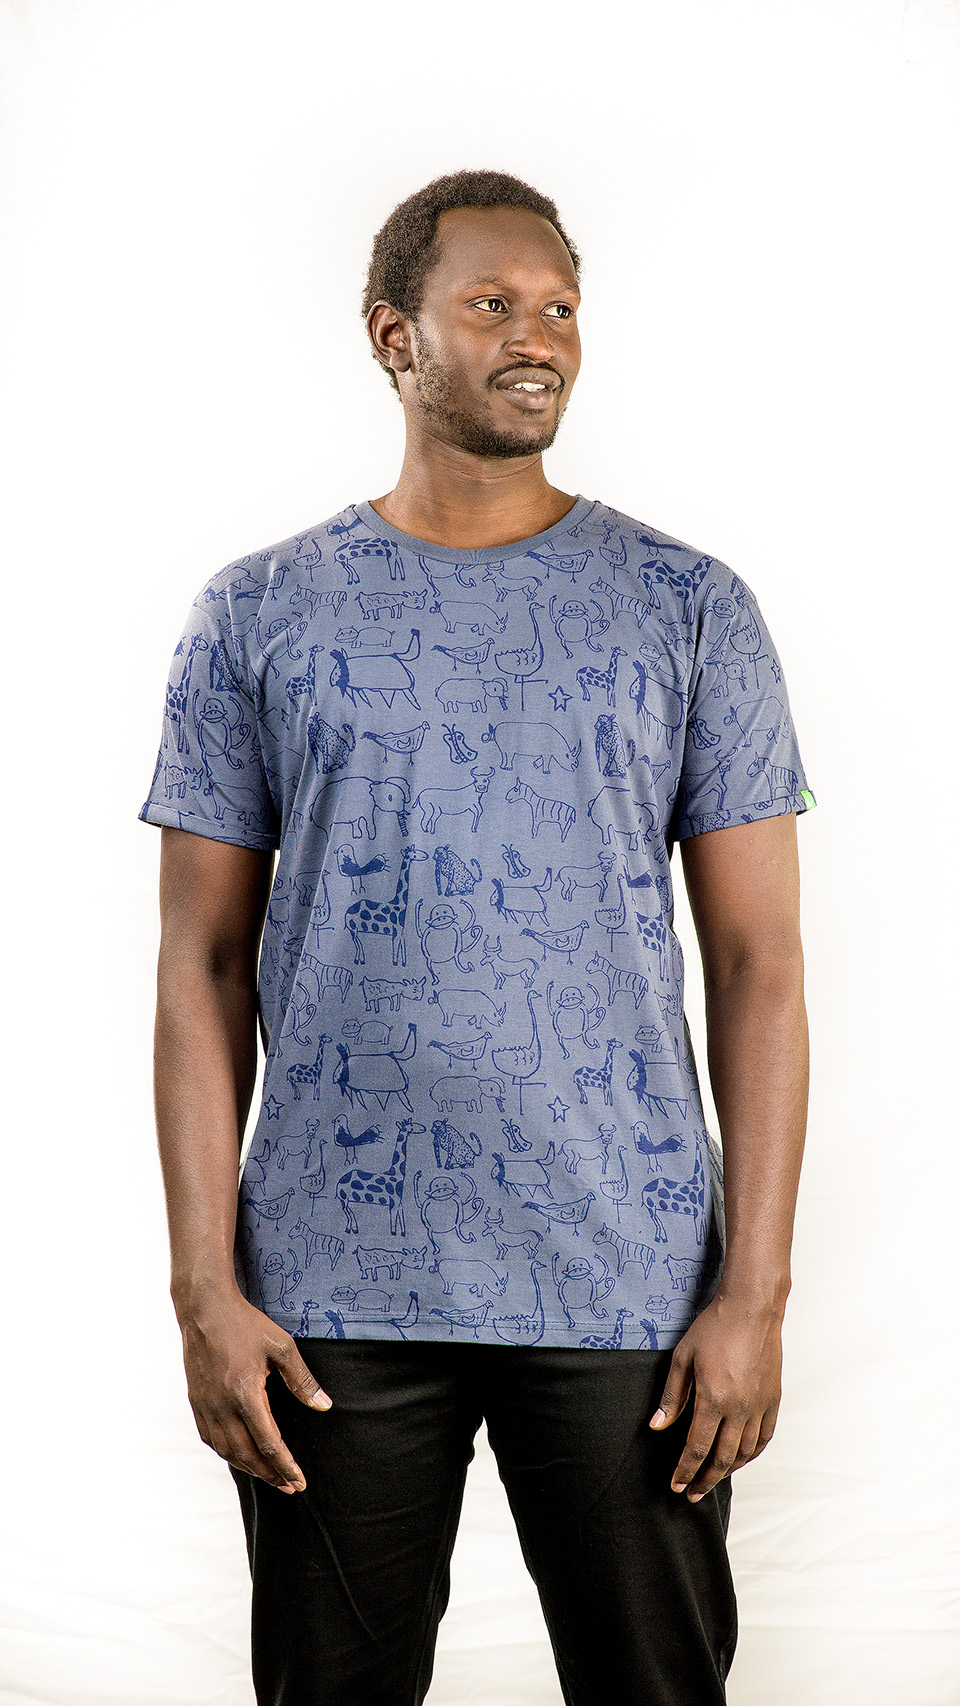 Kipepeo_Fair_Trade_Shirt_Nairobi_Männer_Charcoal_Made_in_Kenya (4)